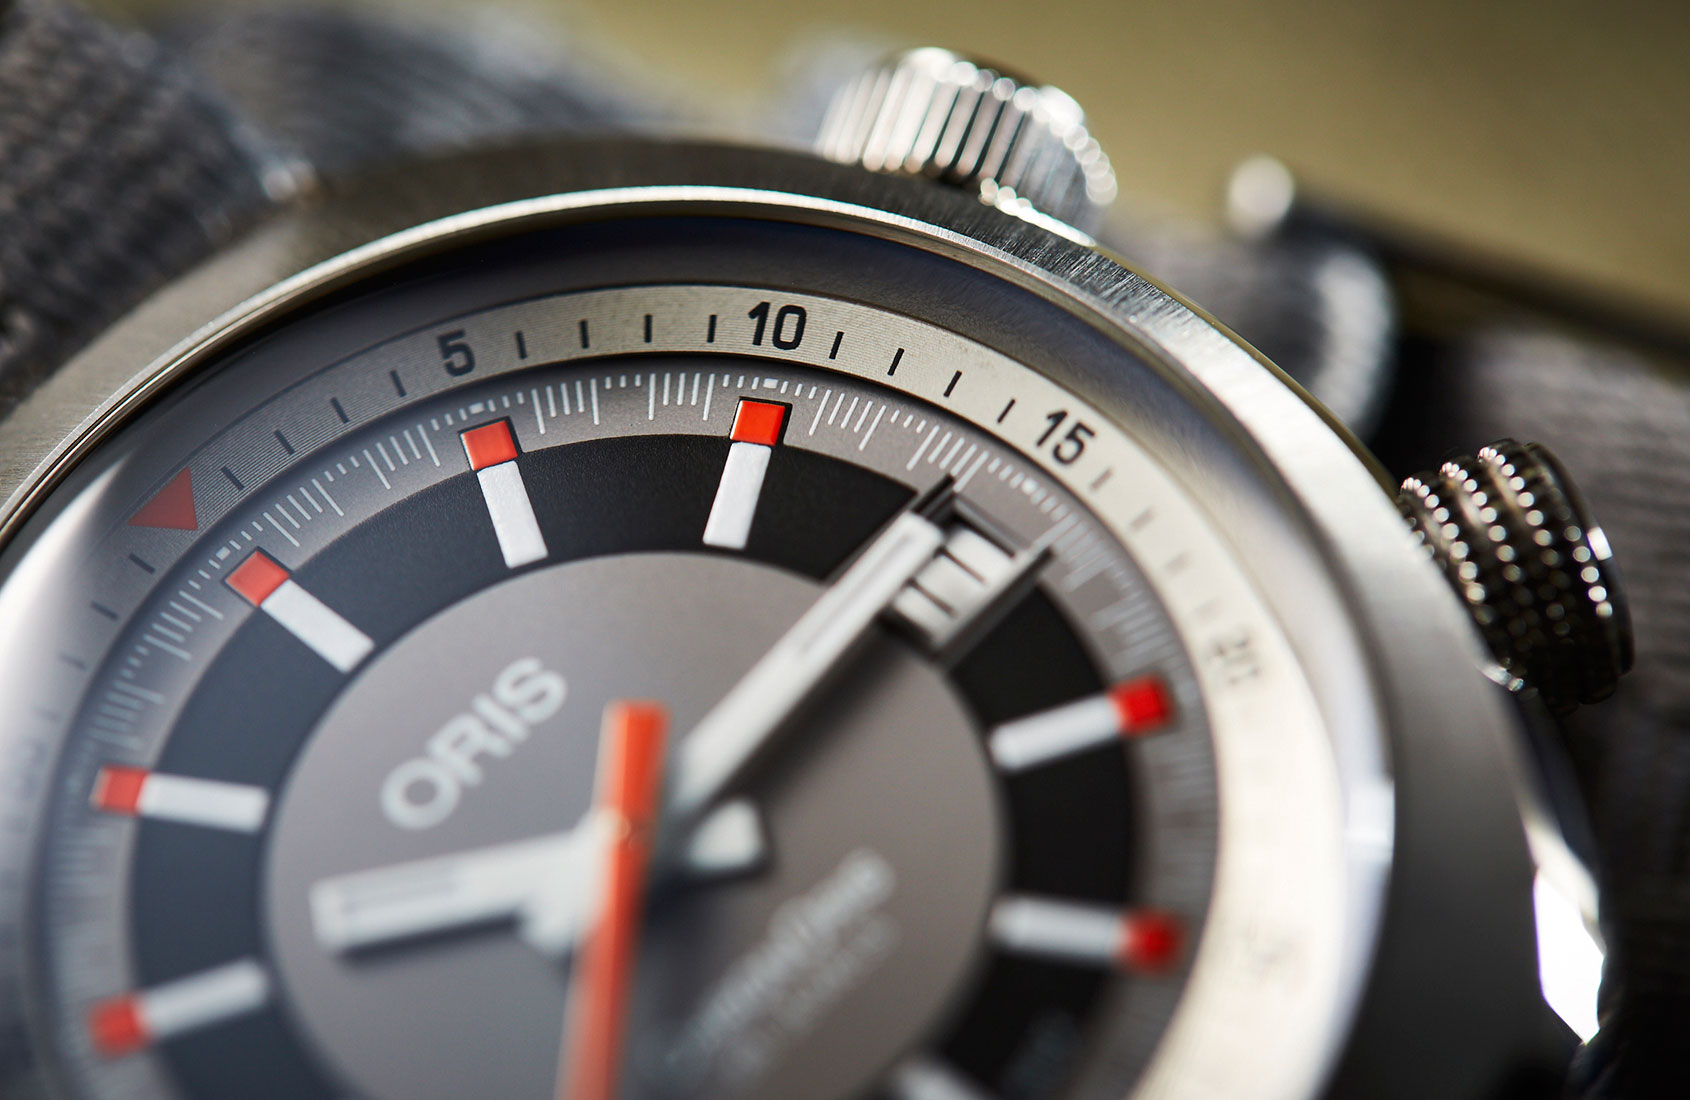 Warm up with the details on this lovely Oris Chronoris